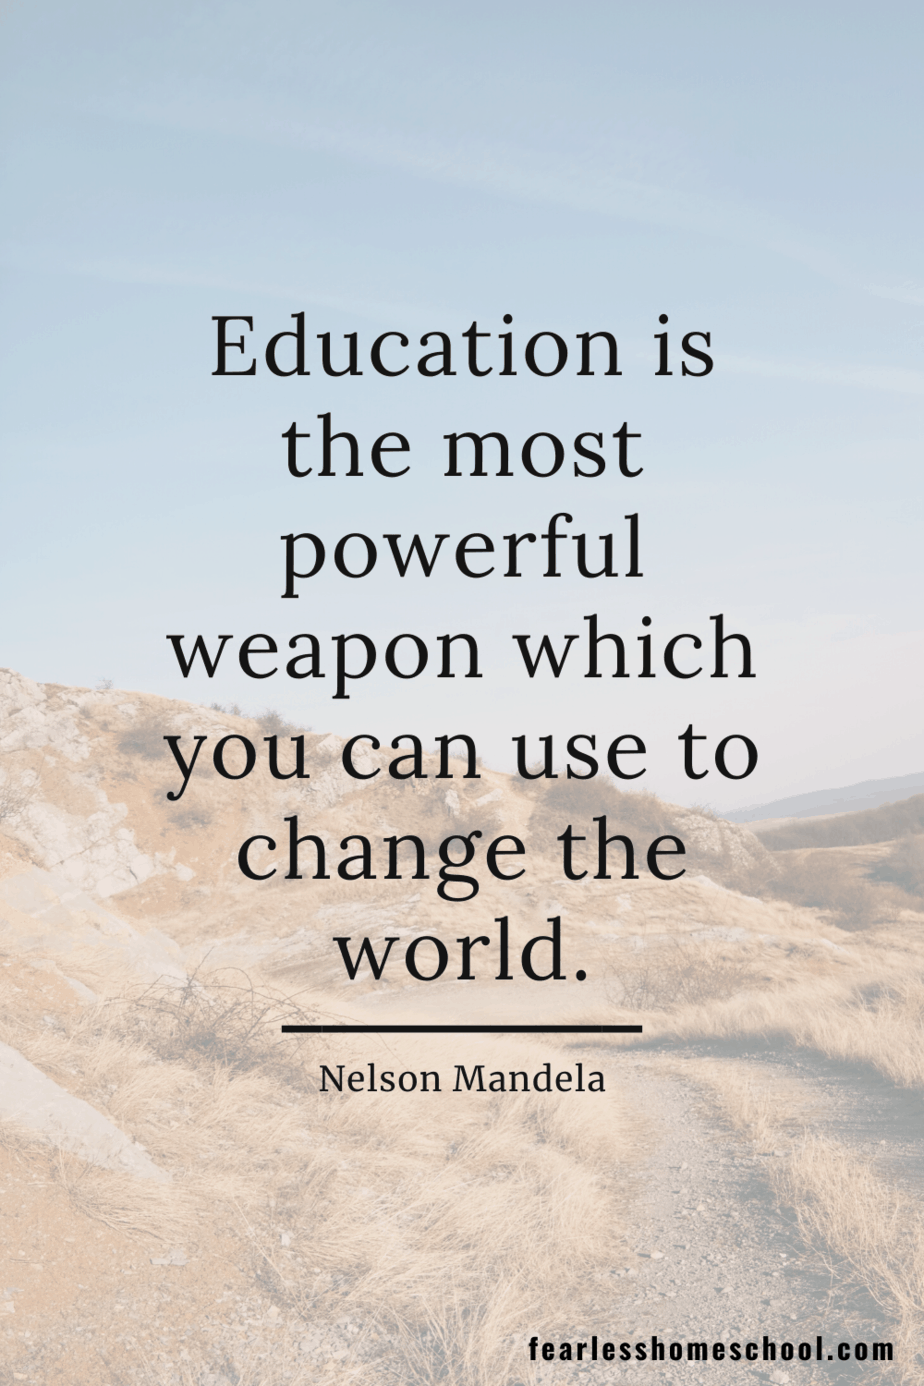 Education is the most powerful weapon which you can use to change the world. Nelson Mandela homeschooling quote